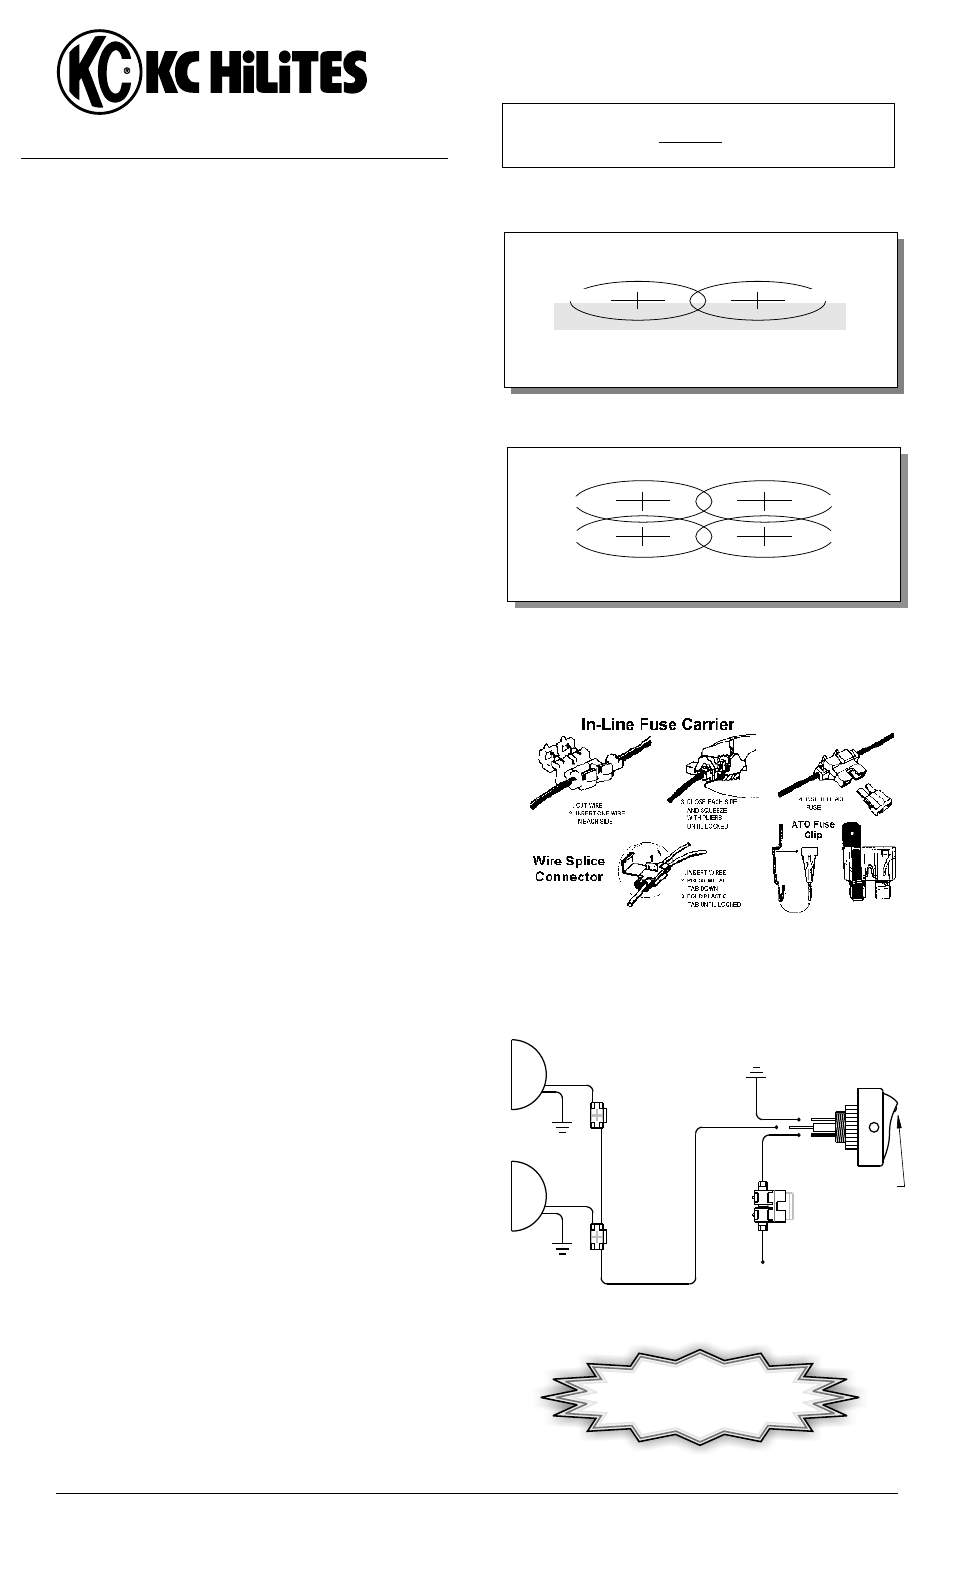 1985 F150 Ignition Module Wiring Schematic Great Design Of Diagram For Duraspark 81 Circuit Maker 2006 Ford F 150 2004